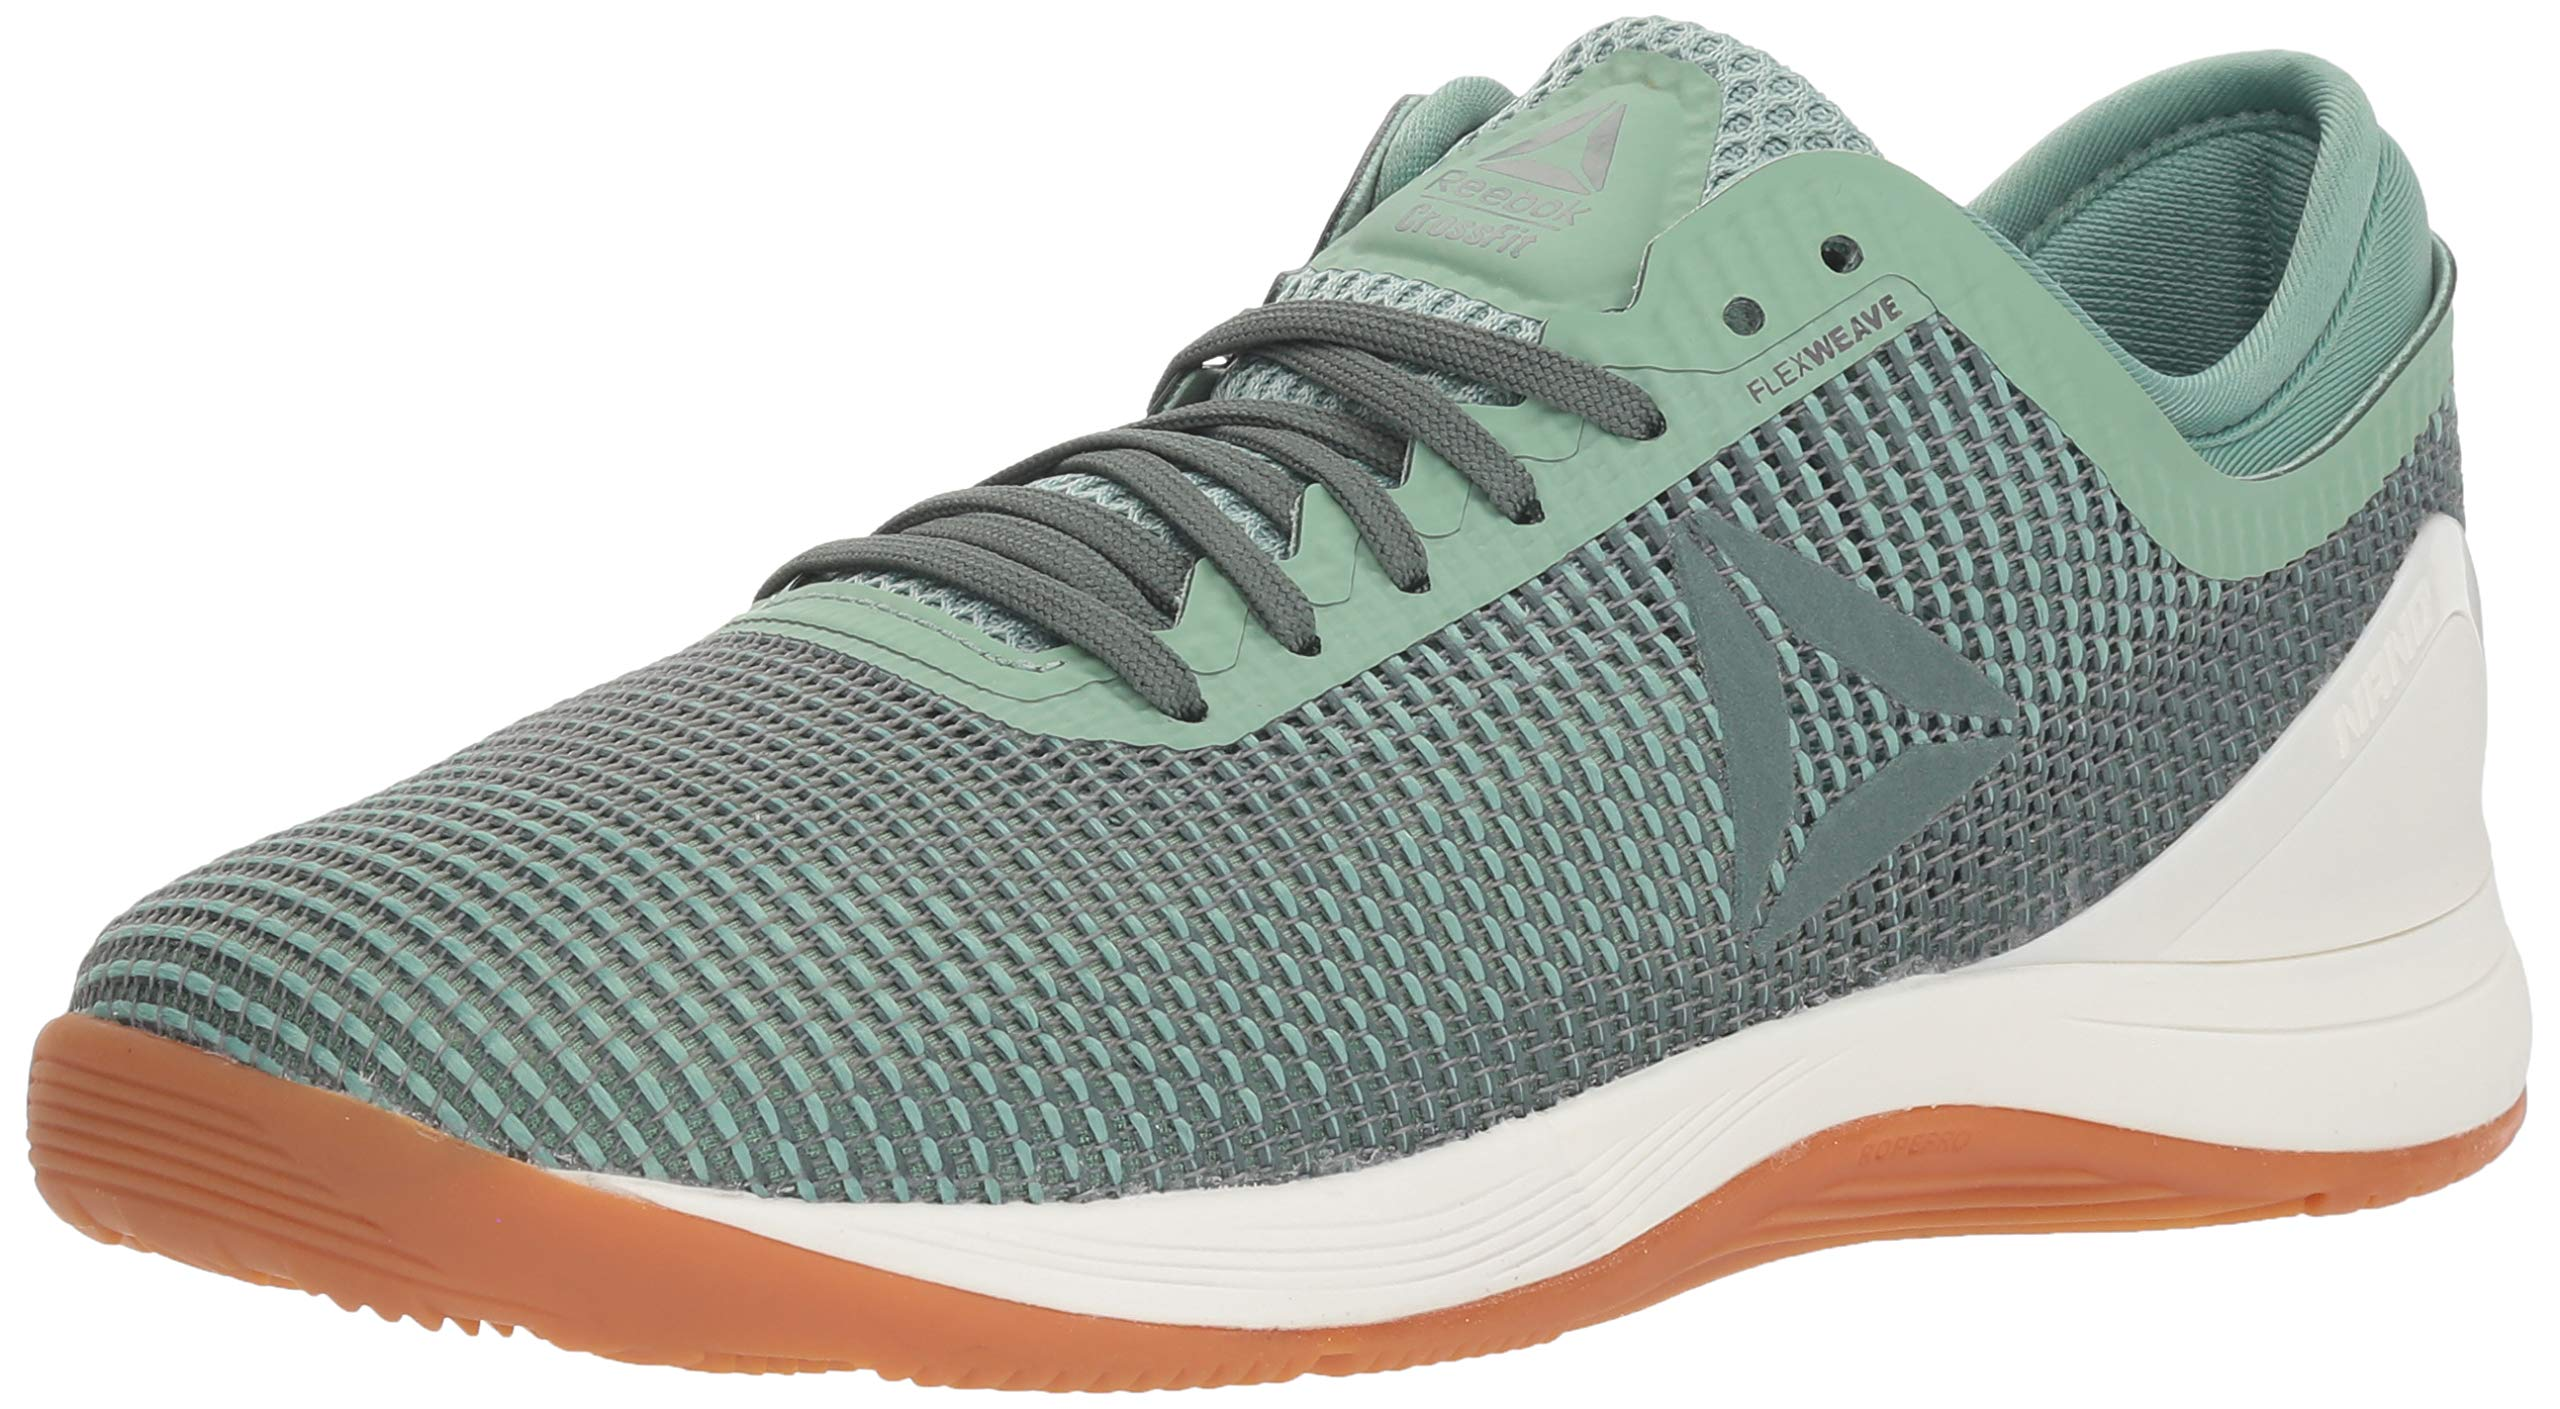 Reebok Women's CROSSFIT Nano 8.0 Flexweave Cross Trainer, industrial green/chalk grey, 8 M US by Reebok